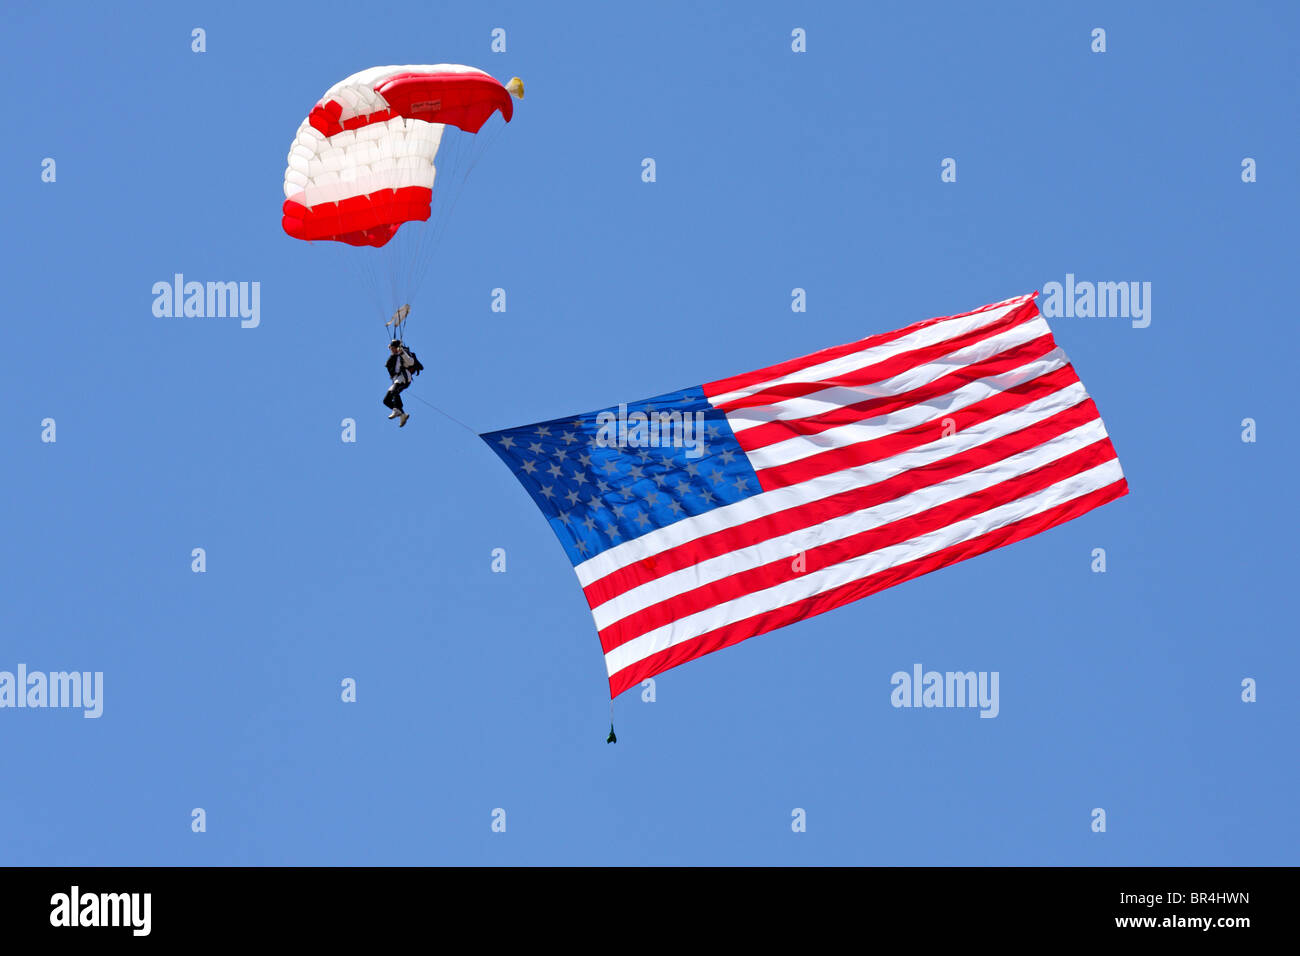 The stars and stripes makes its way down to earth beneath the canopy of a parachutists. - Stock Image